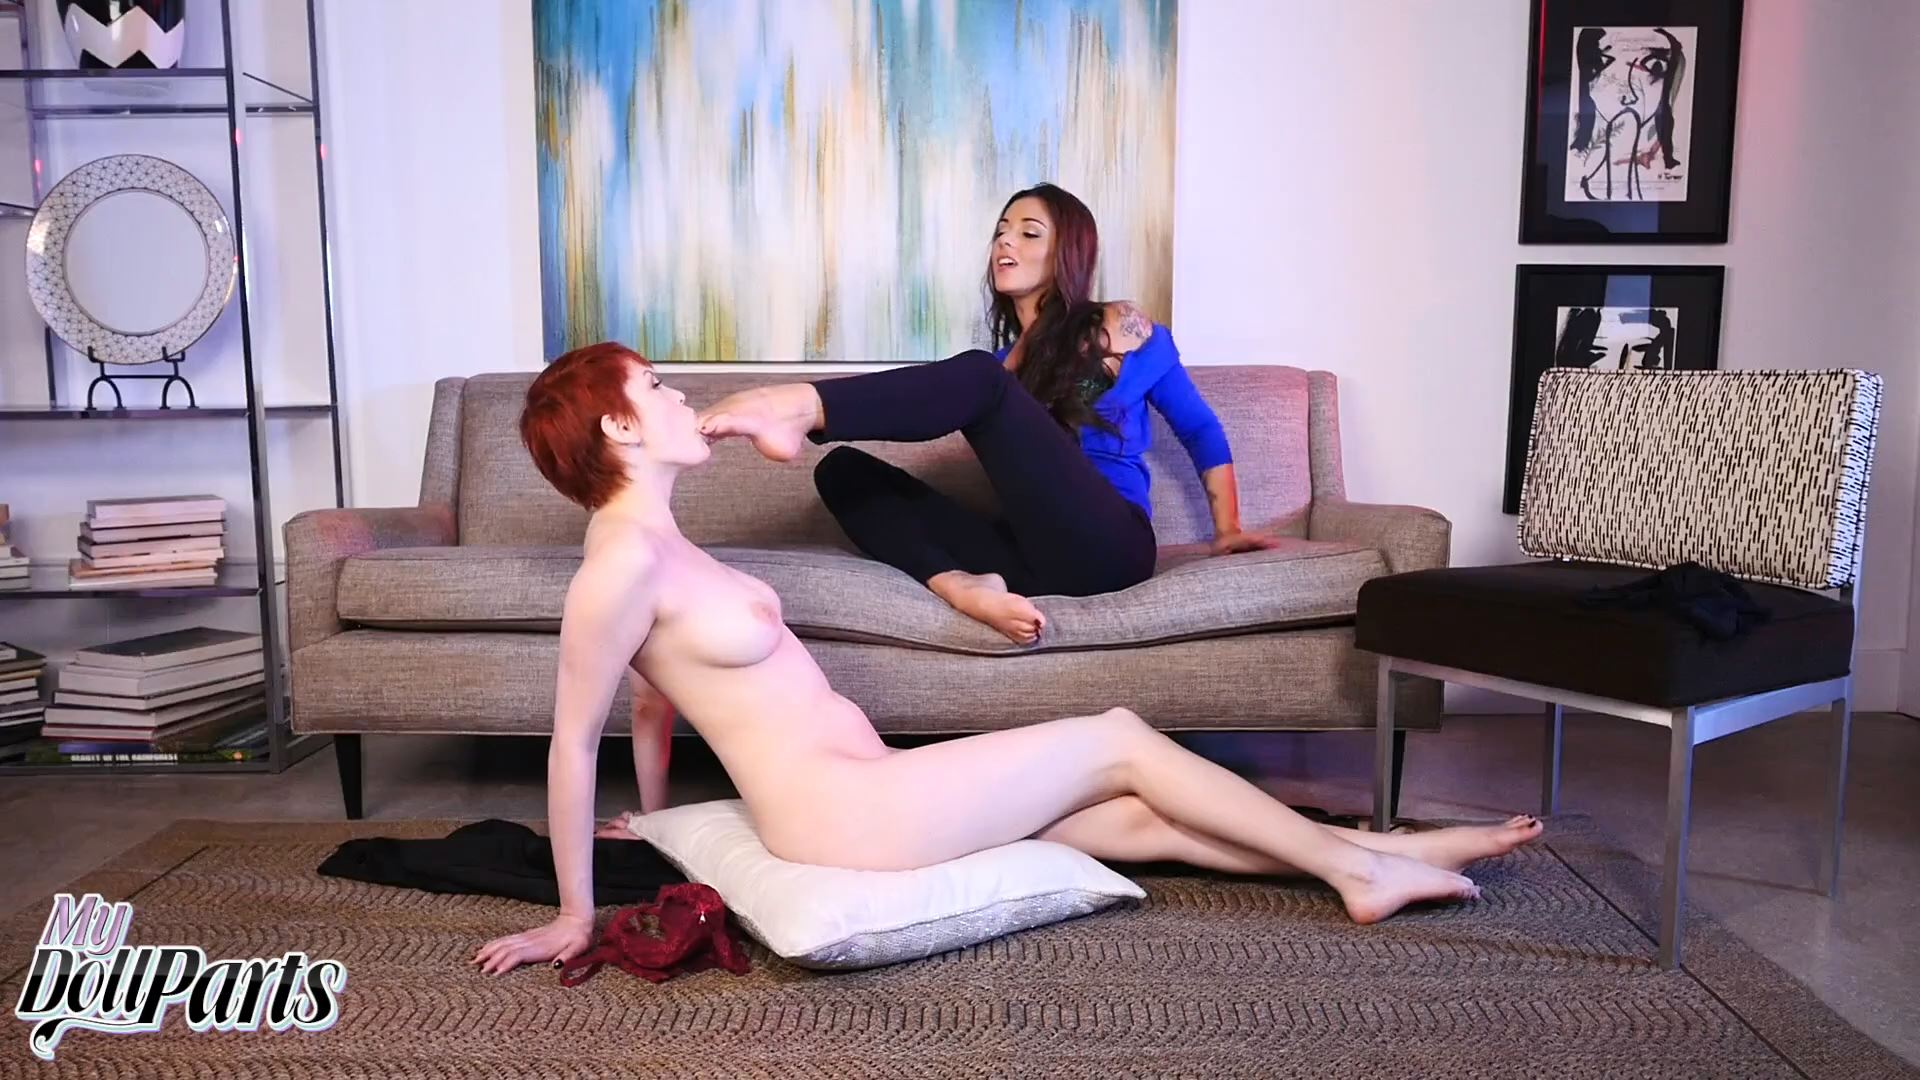 Bree Daniels, Kayla Jane In Scene: Hypno-Thera-Bree - MYDOLLPARTS - FULL HD/1080p/MP4